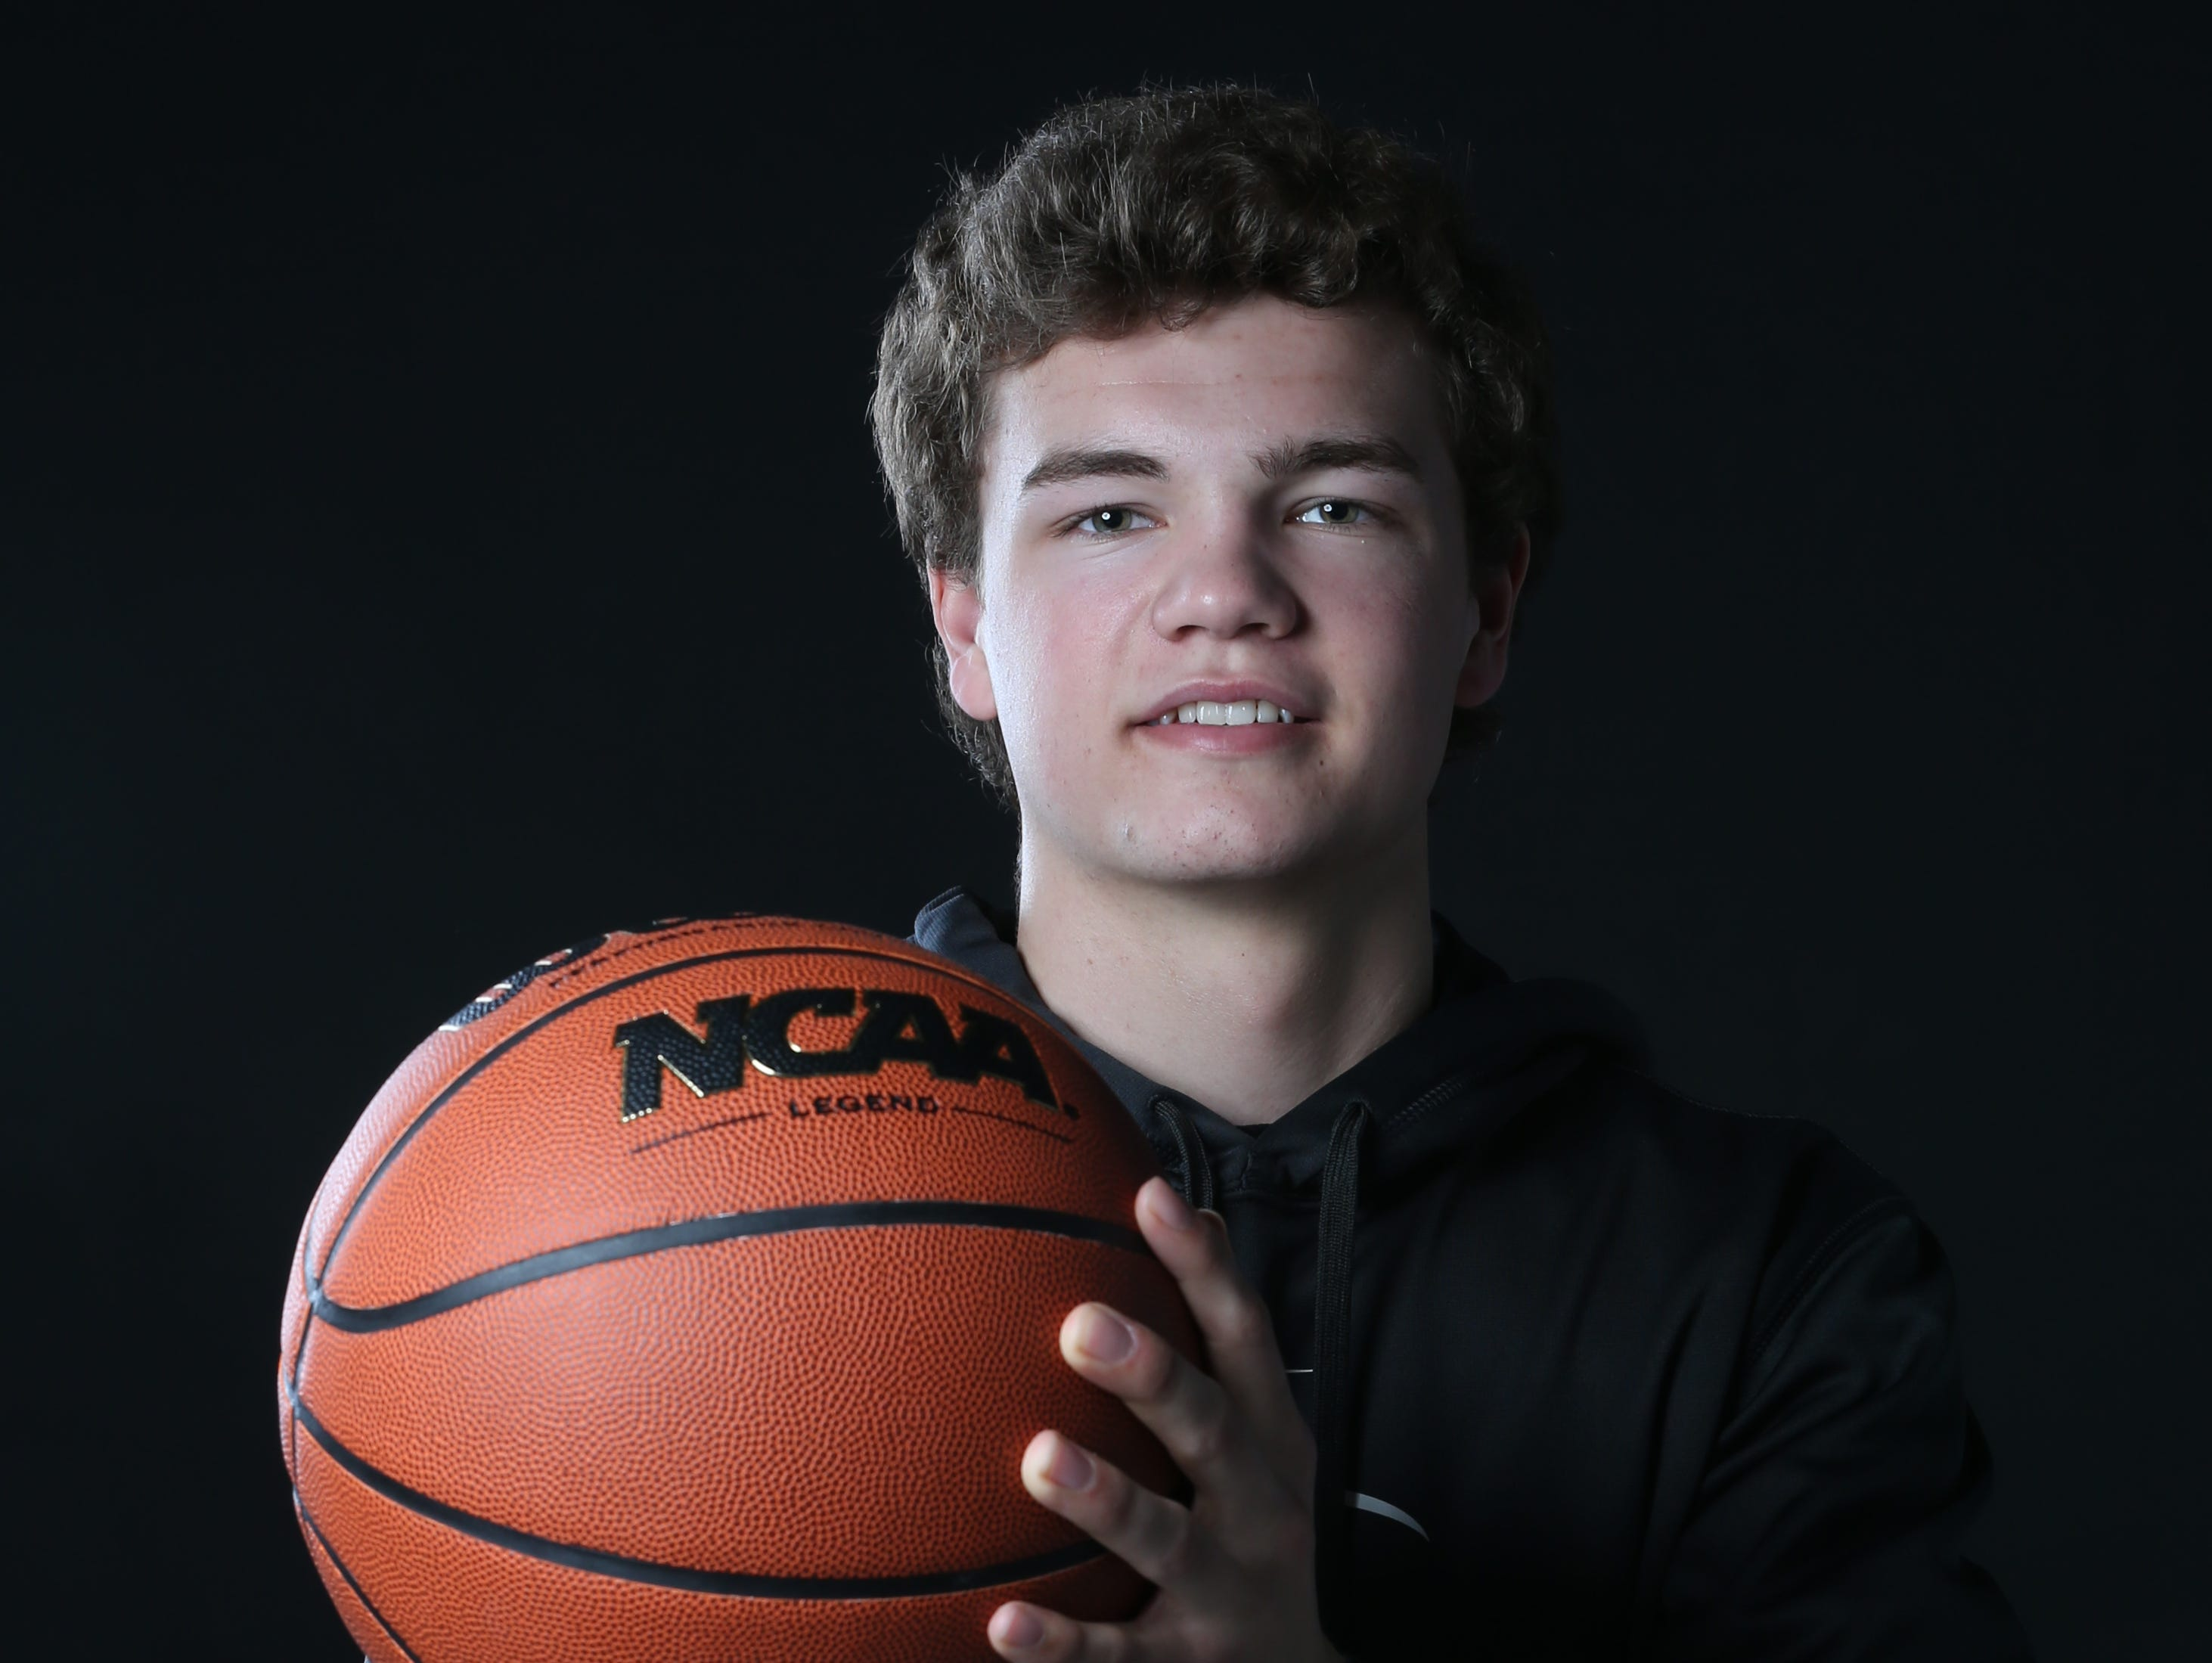 Kyle Lang, Mason City, a Des Moines Register's All-CIML Elite boysÕ basketball selection, photographed in the studio on Sunday, Feb. 26, 2017, in Des Moines.